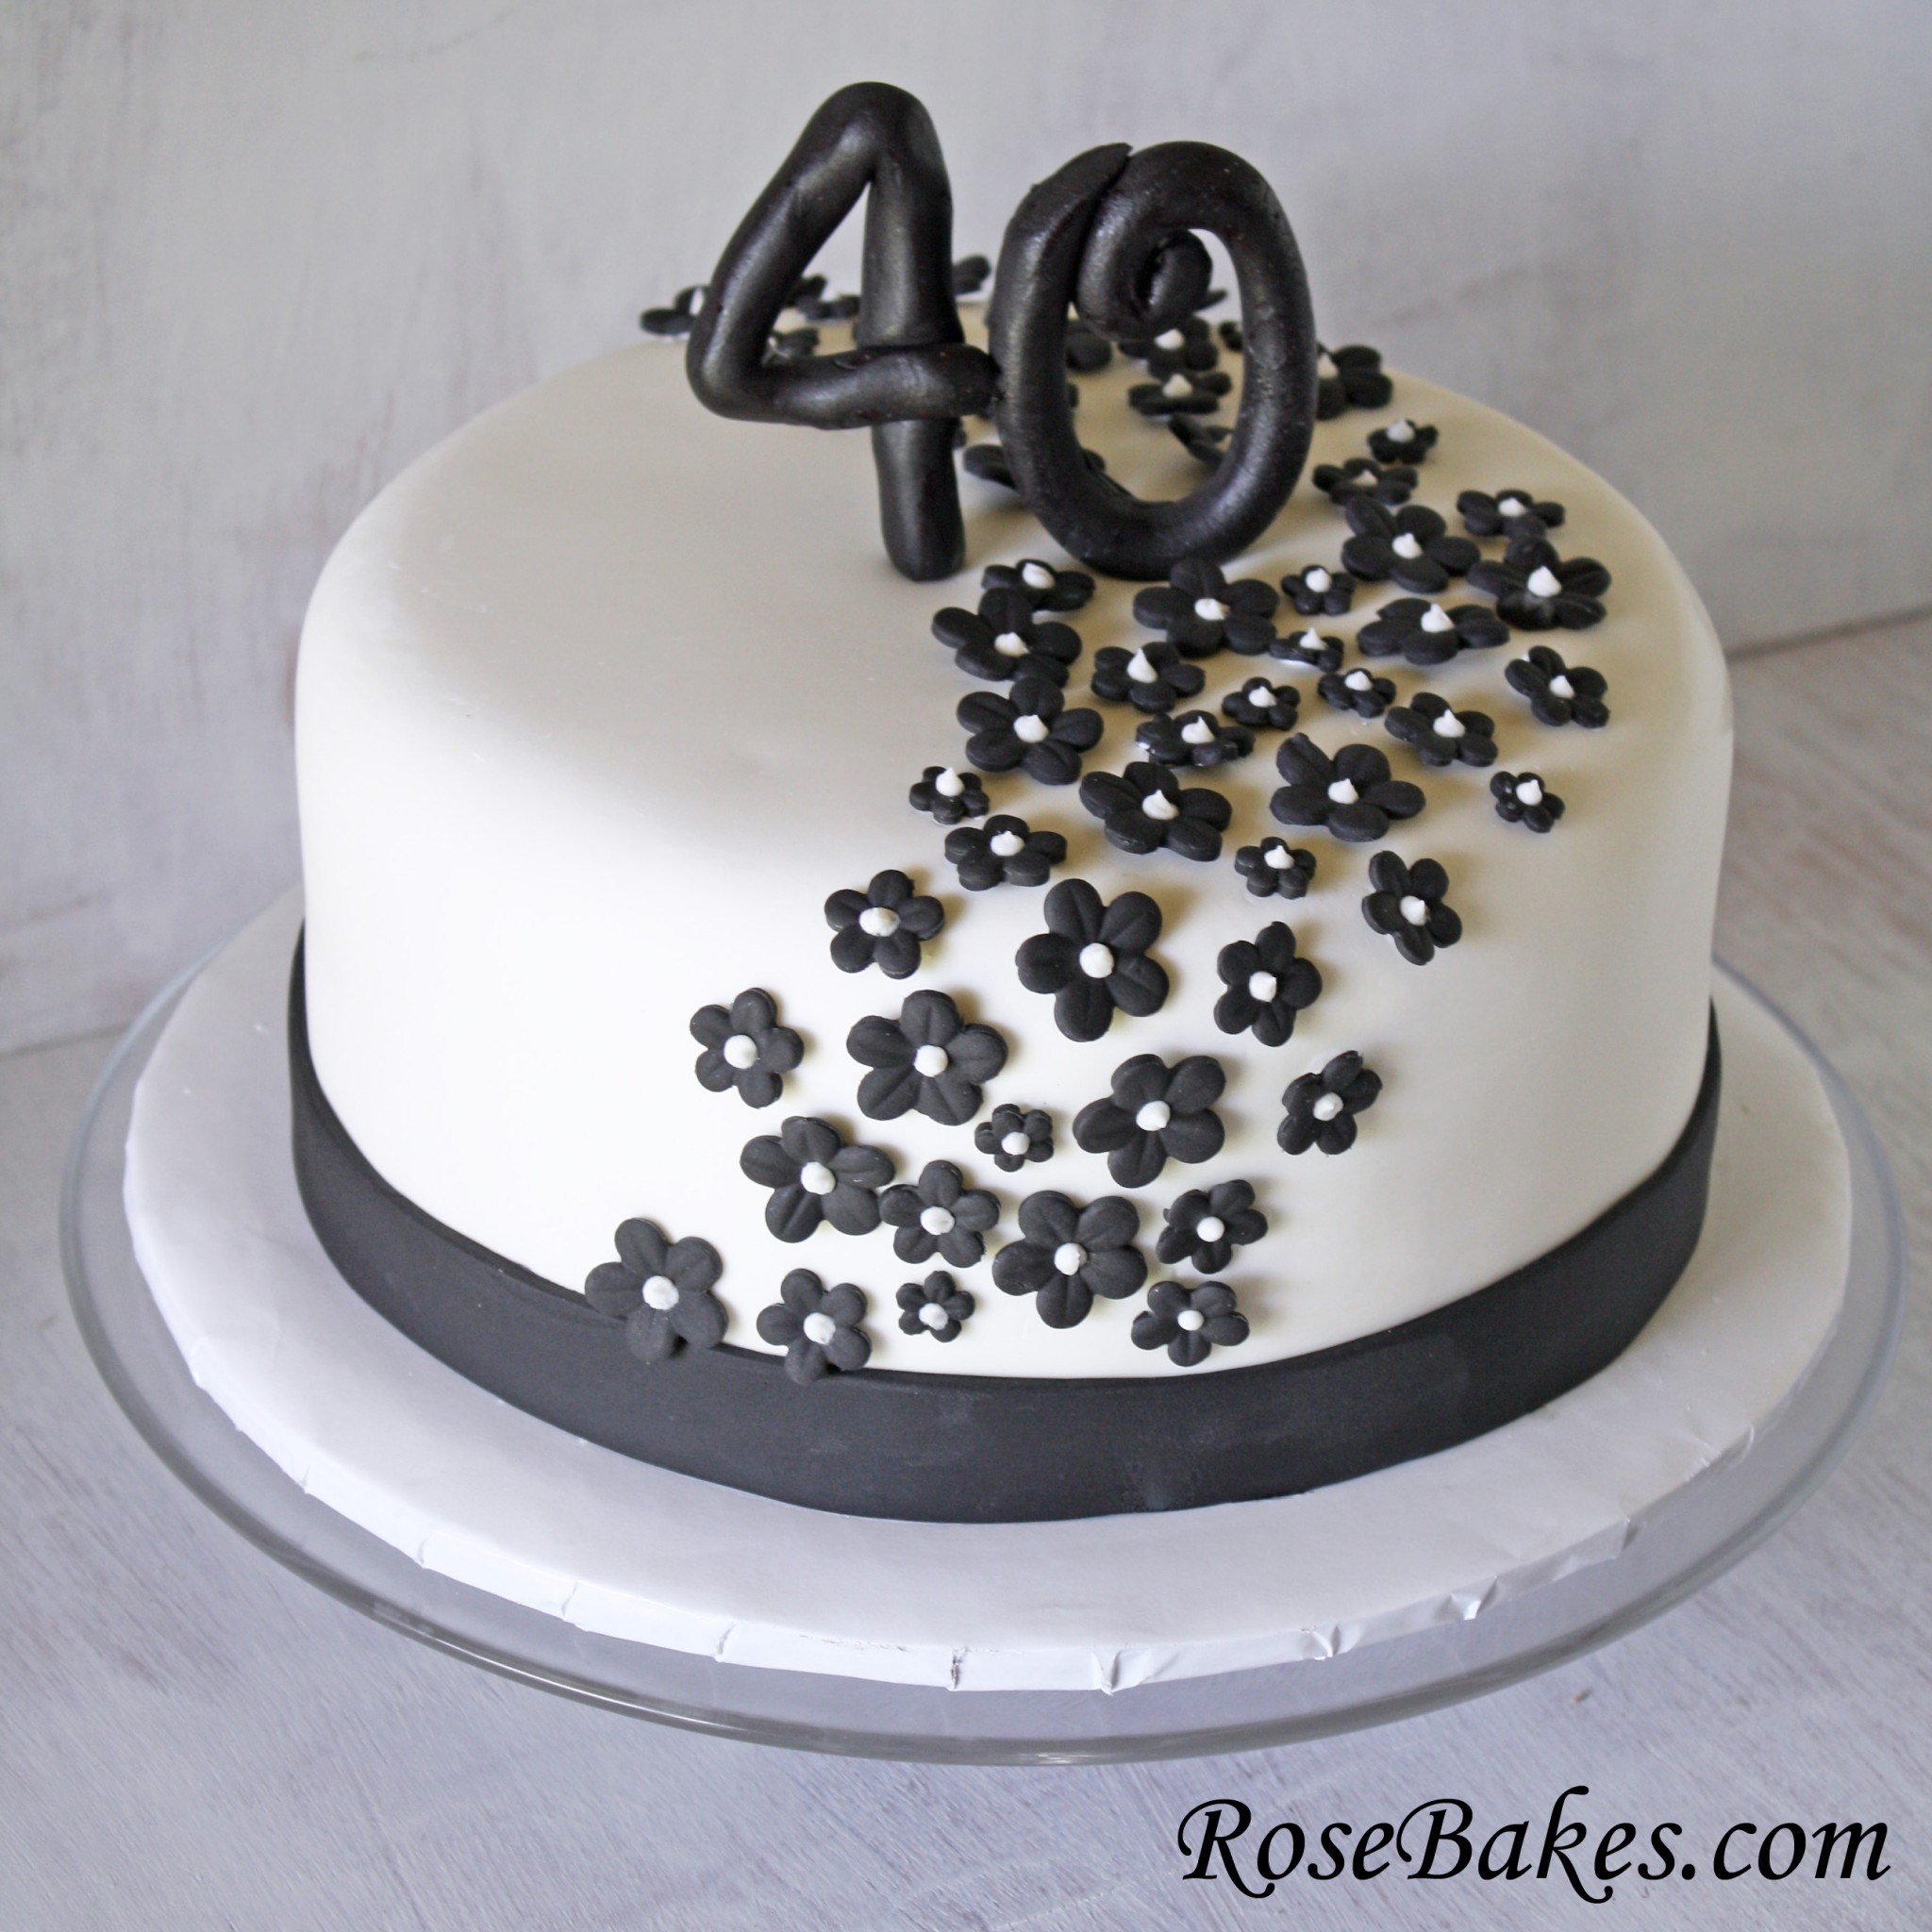 Black And White Birthday Cake Black White 40th Birthday Cake Flowers Rose Bakes